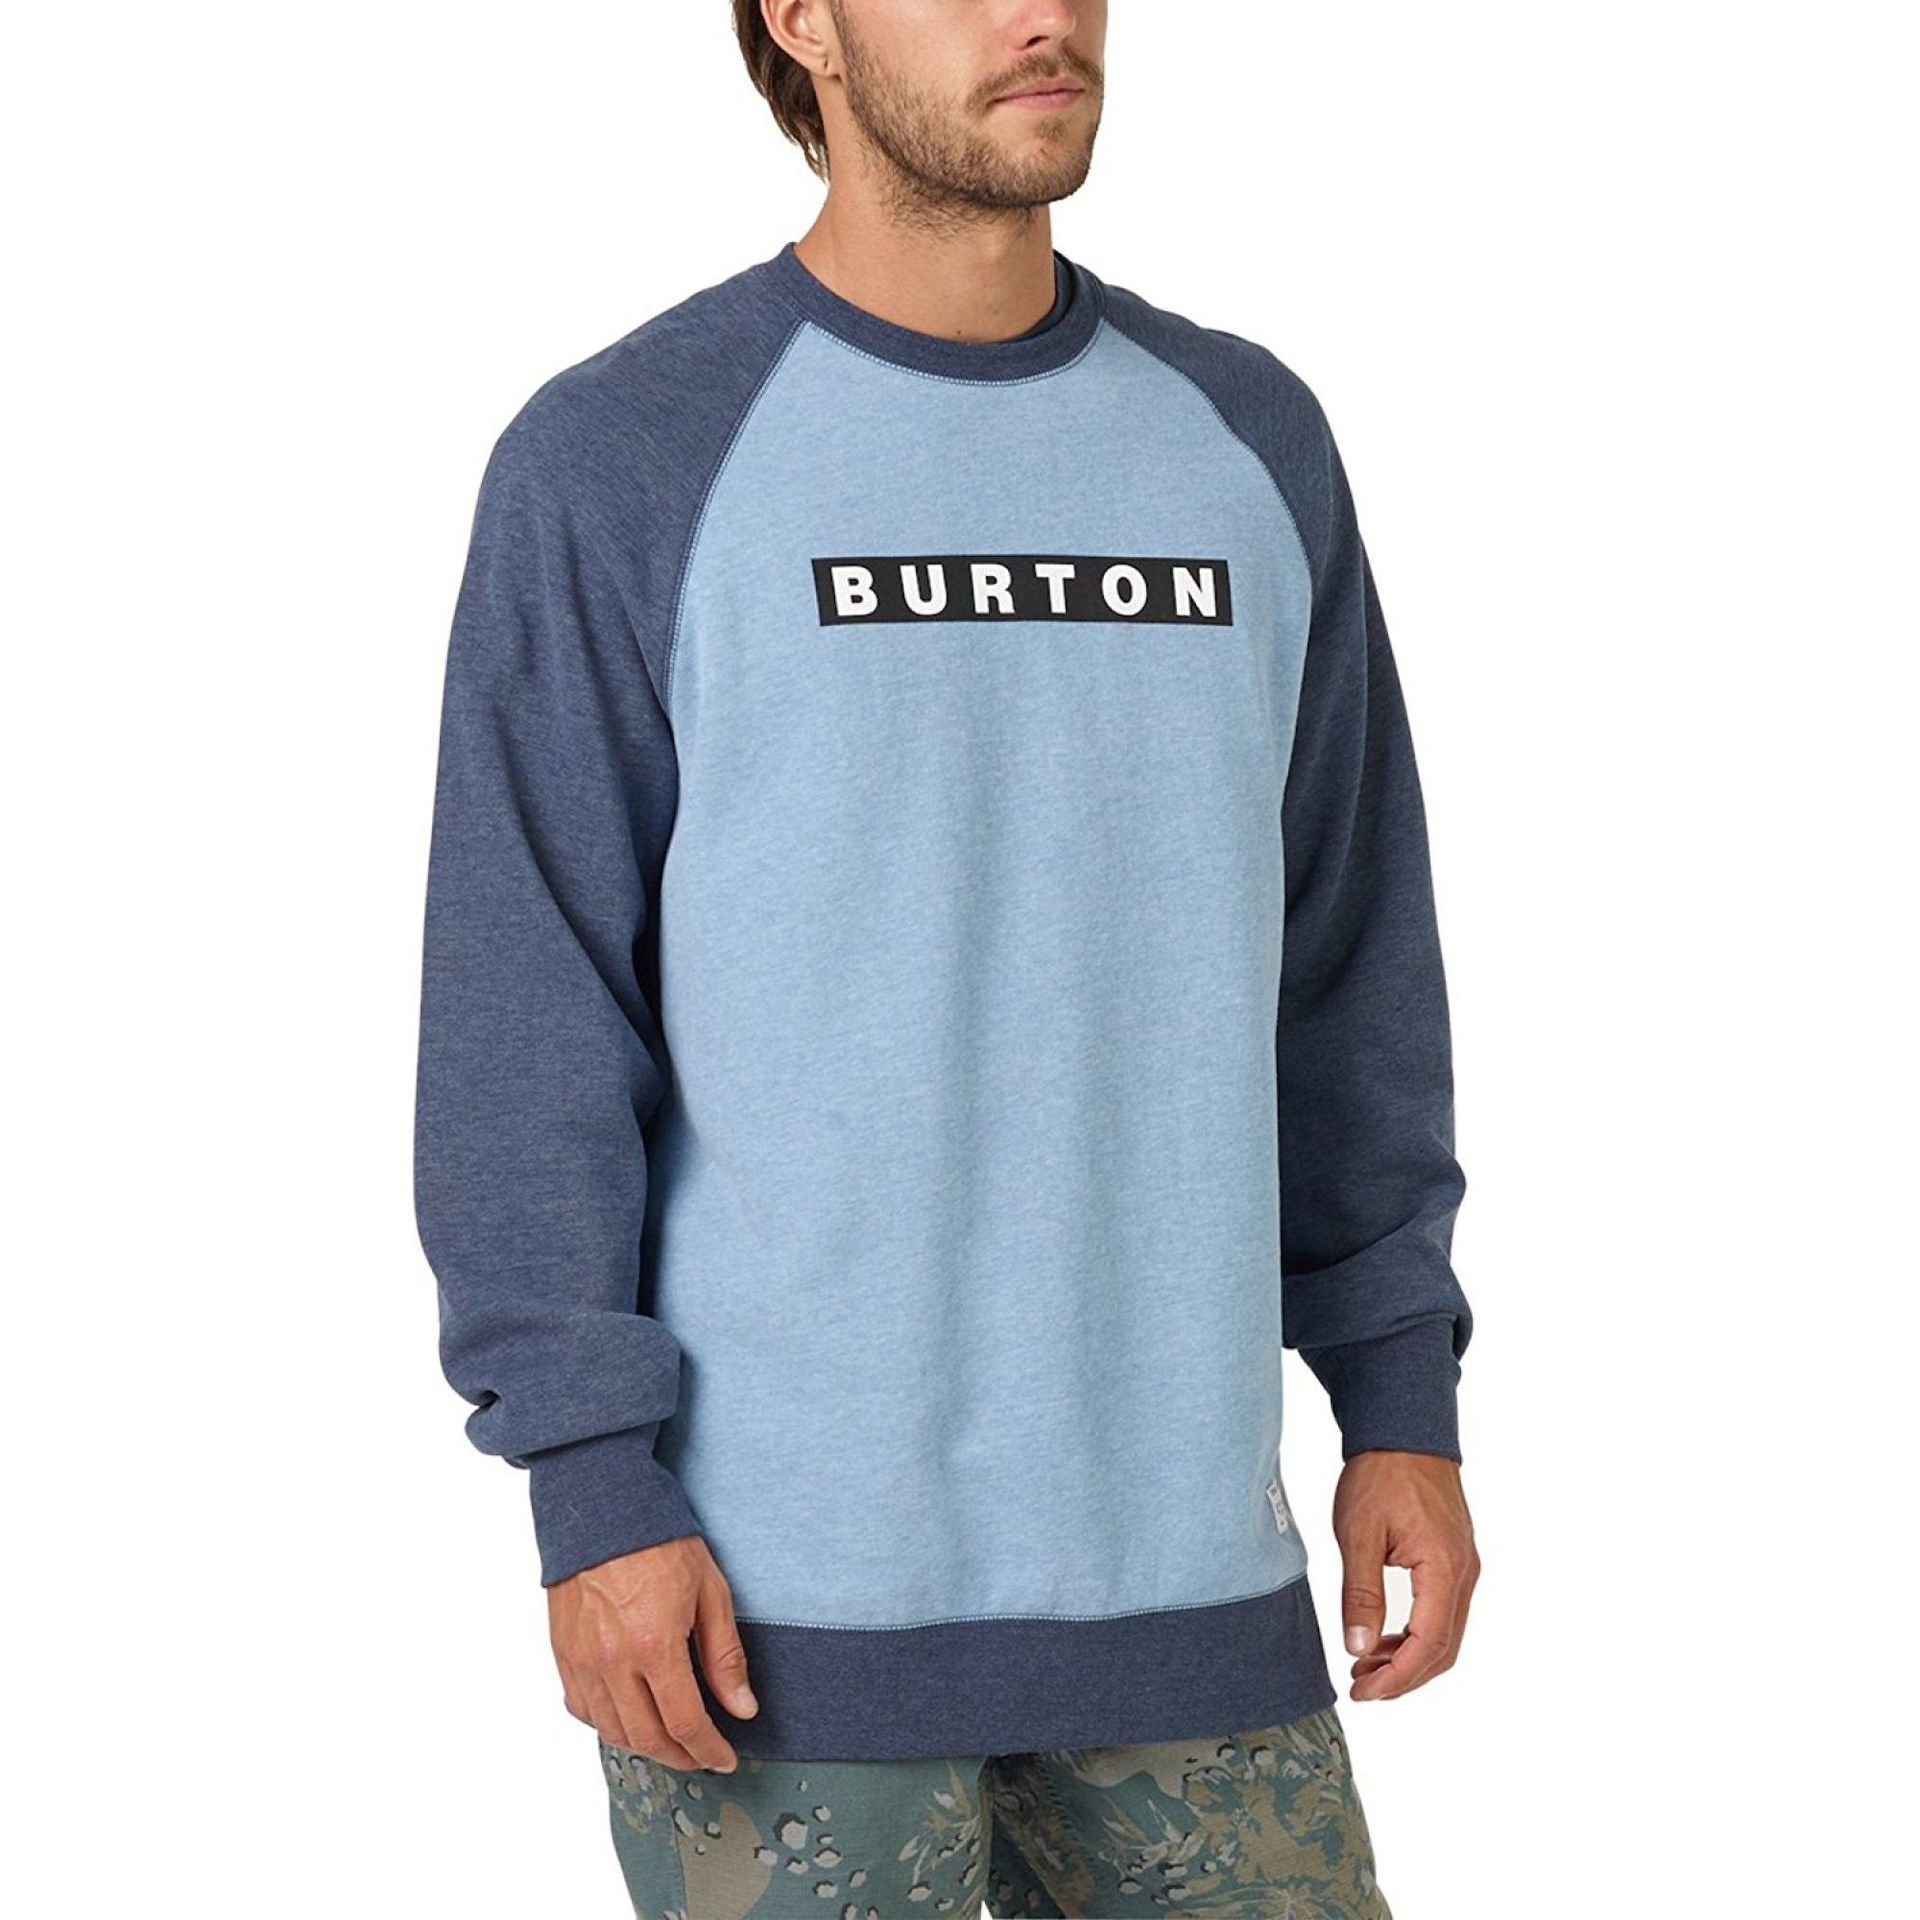 BLUZA BURTON VAULT CREW BLUE HEAVEN HEATHER 1